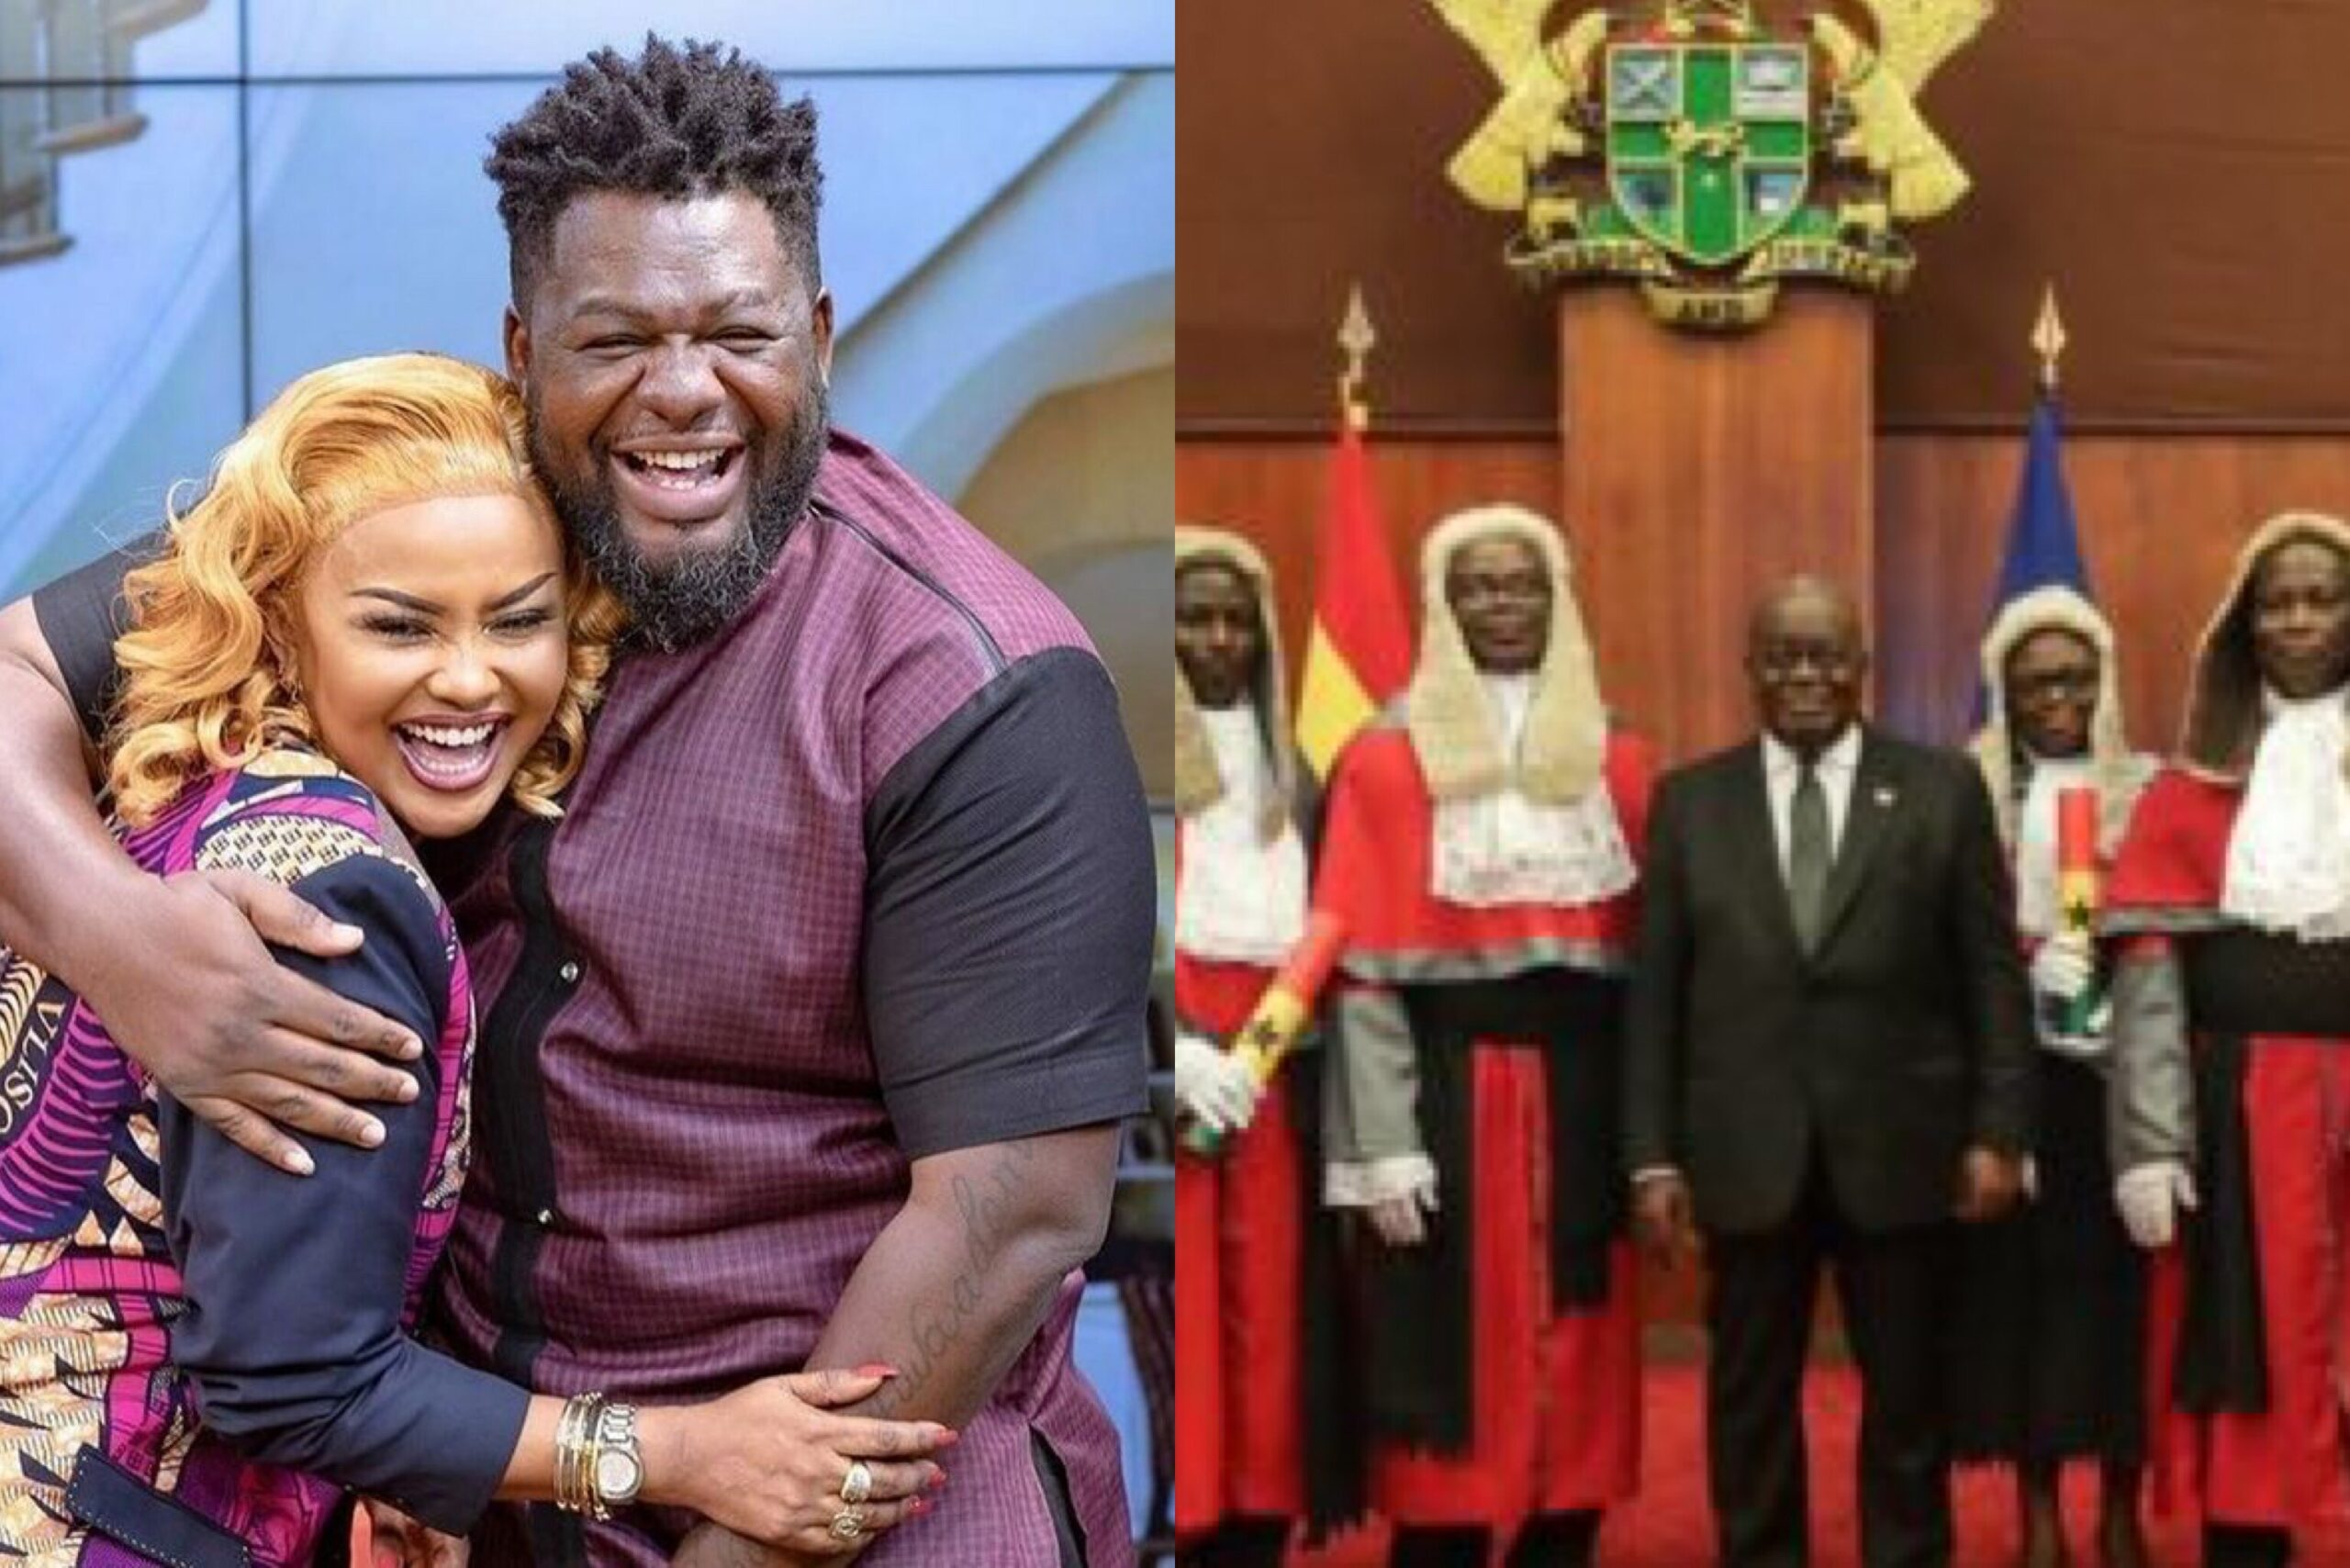 Court Forces Nana Ama McBrown To Testify In Bulldog Case Even Though Supreme Court Ruled a Witness Cannot Be Forced to Testify